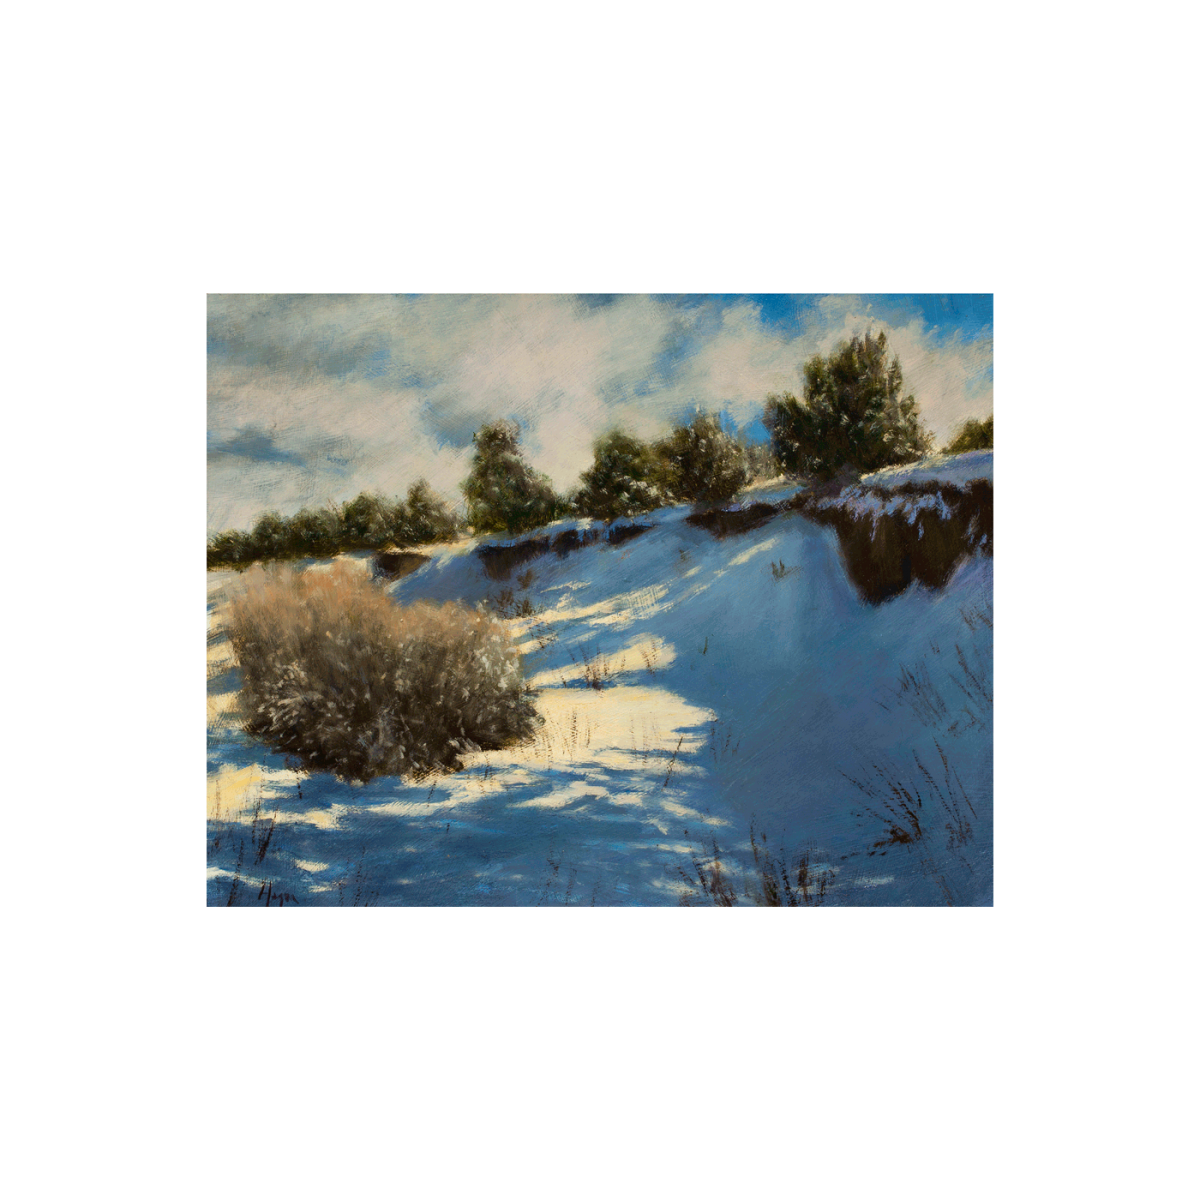 Snow Drifted Arroyo painting by Peter Hagen